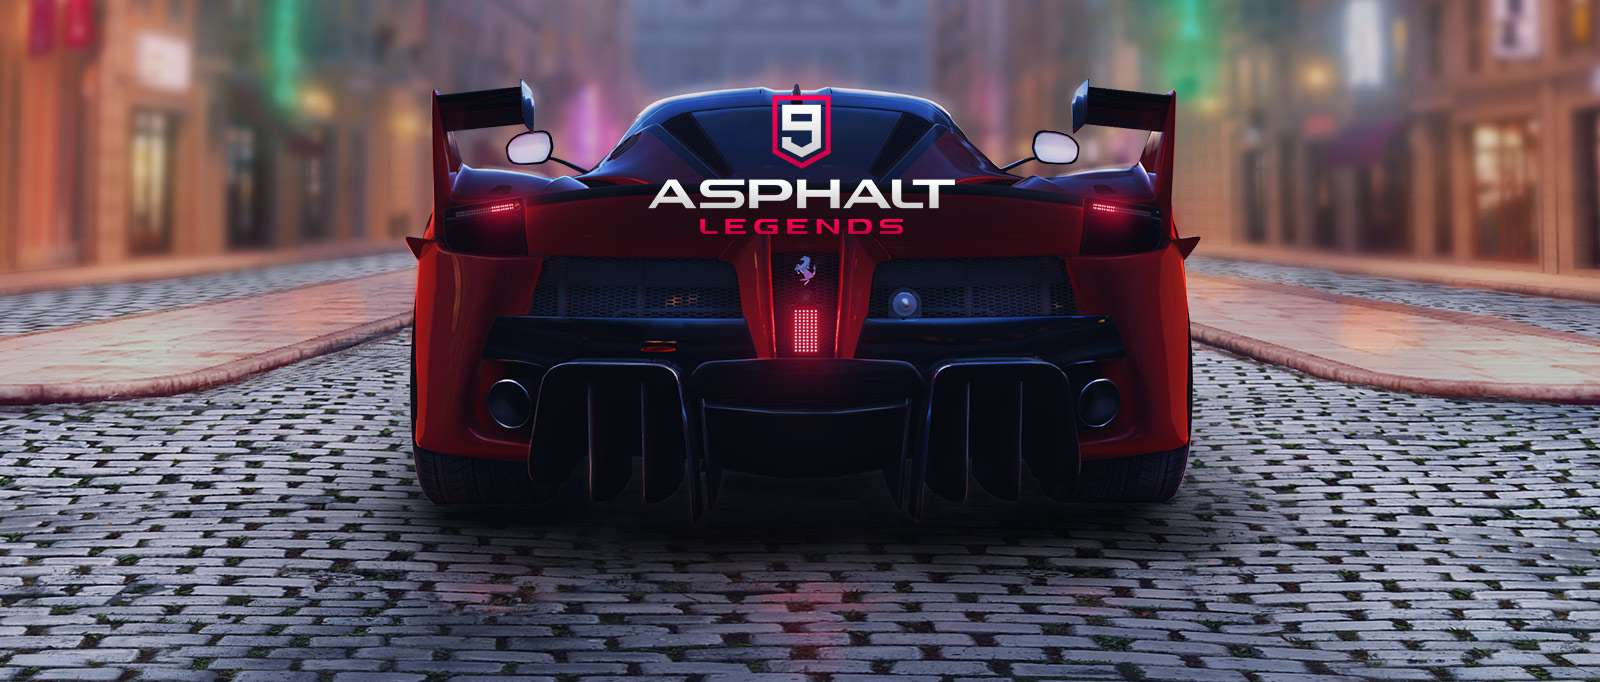 Asphalt 9: Legends - Racing Games To Play At Home